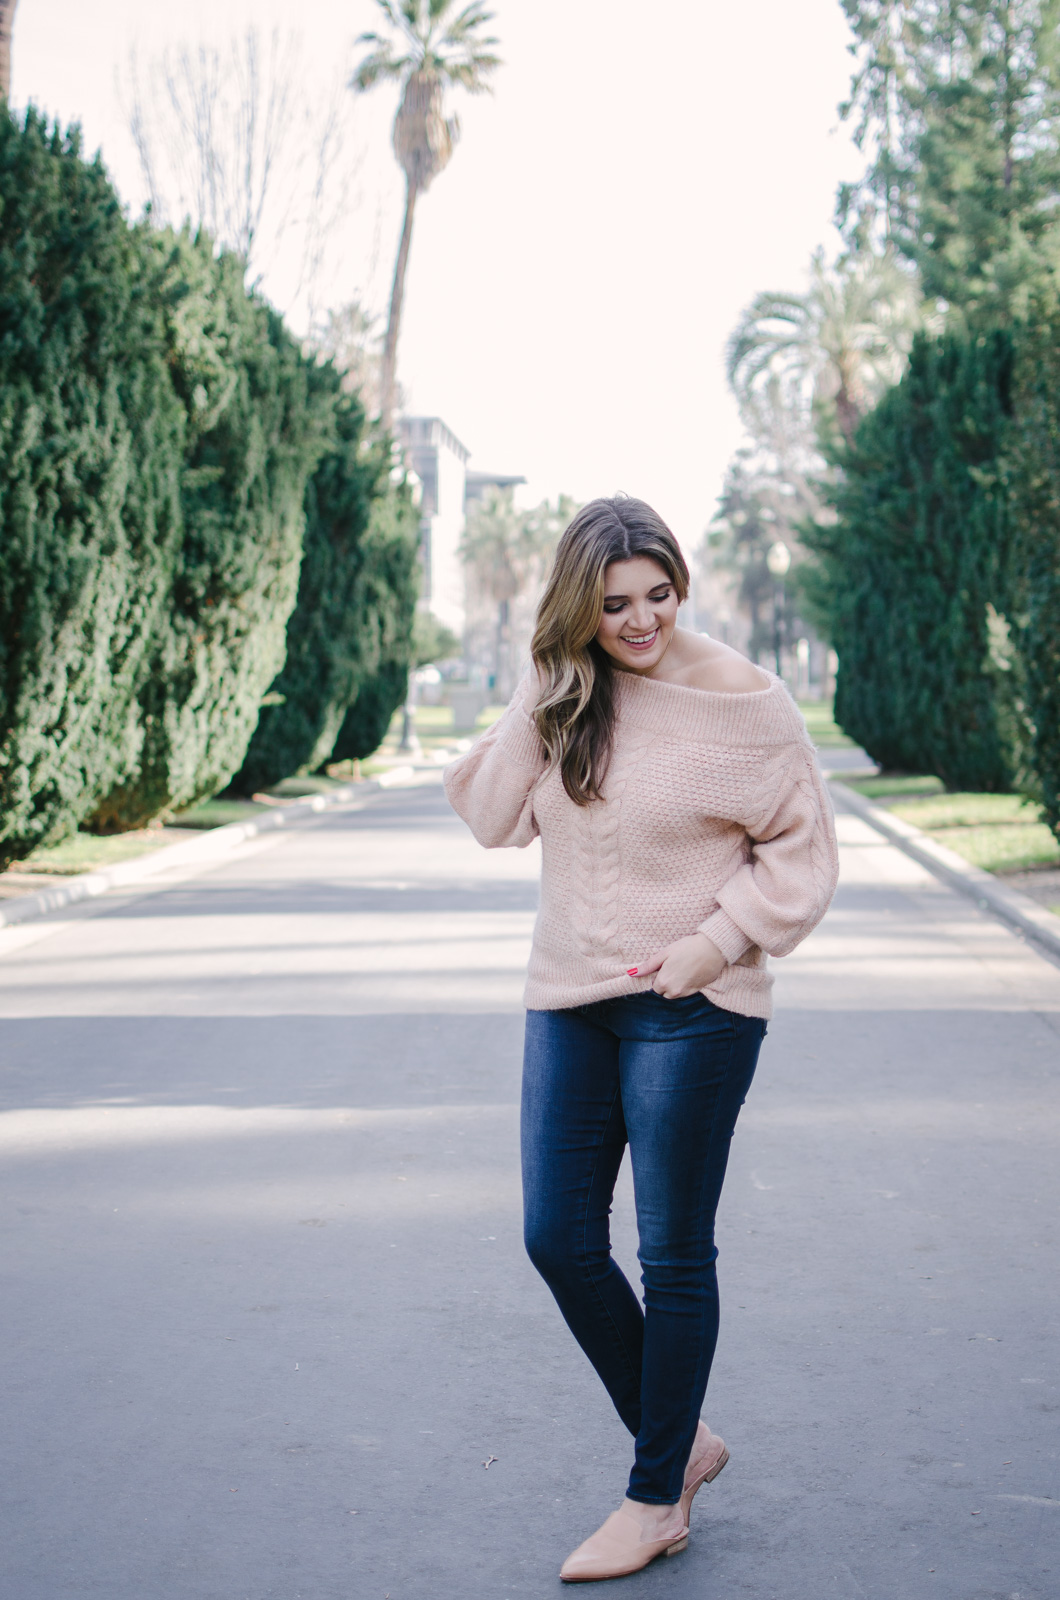 blush off shoulder sweater outfit - how wear an off the shoulder sweater | Shop this look or see more outfit ideas at bylaurenm.com!